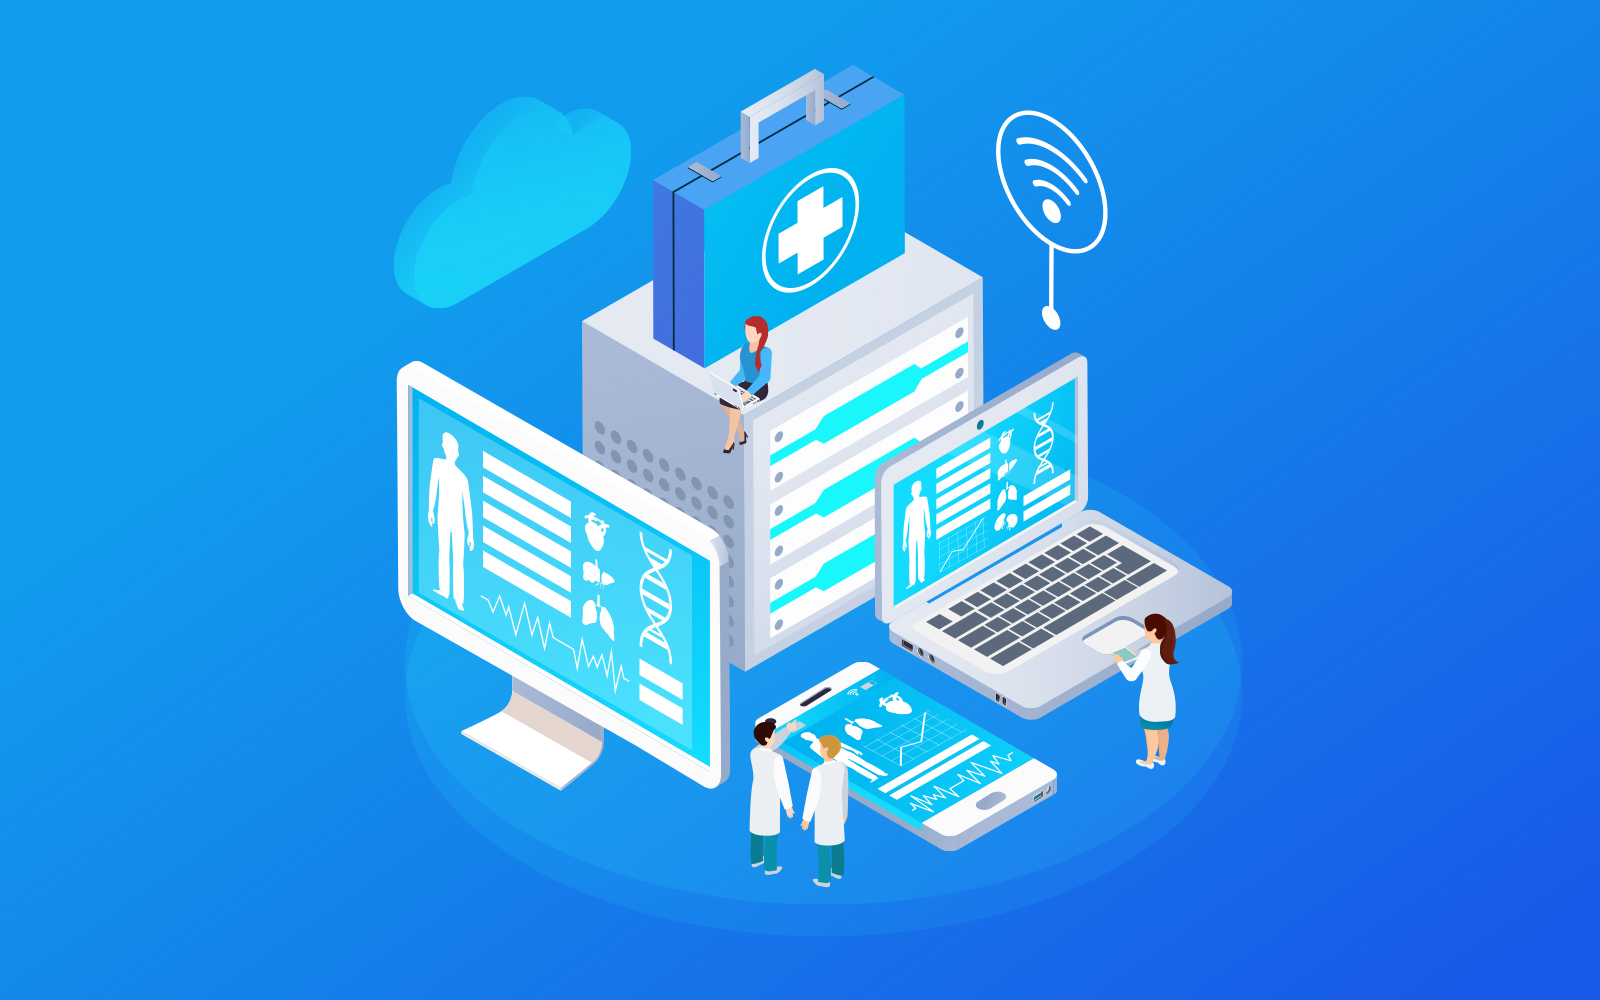 Features and Advantages of Hospital Management Software